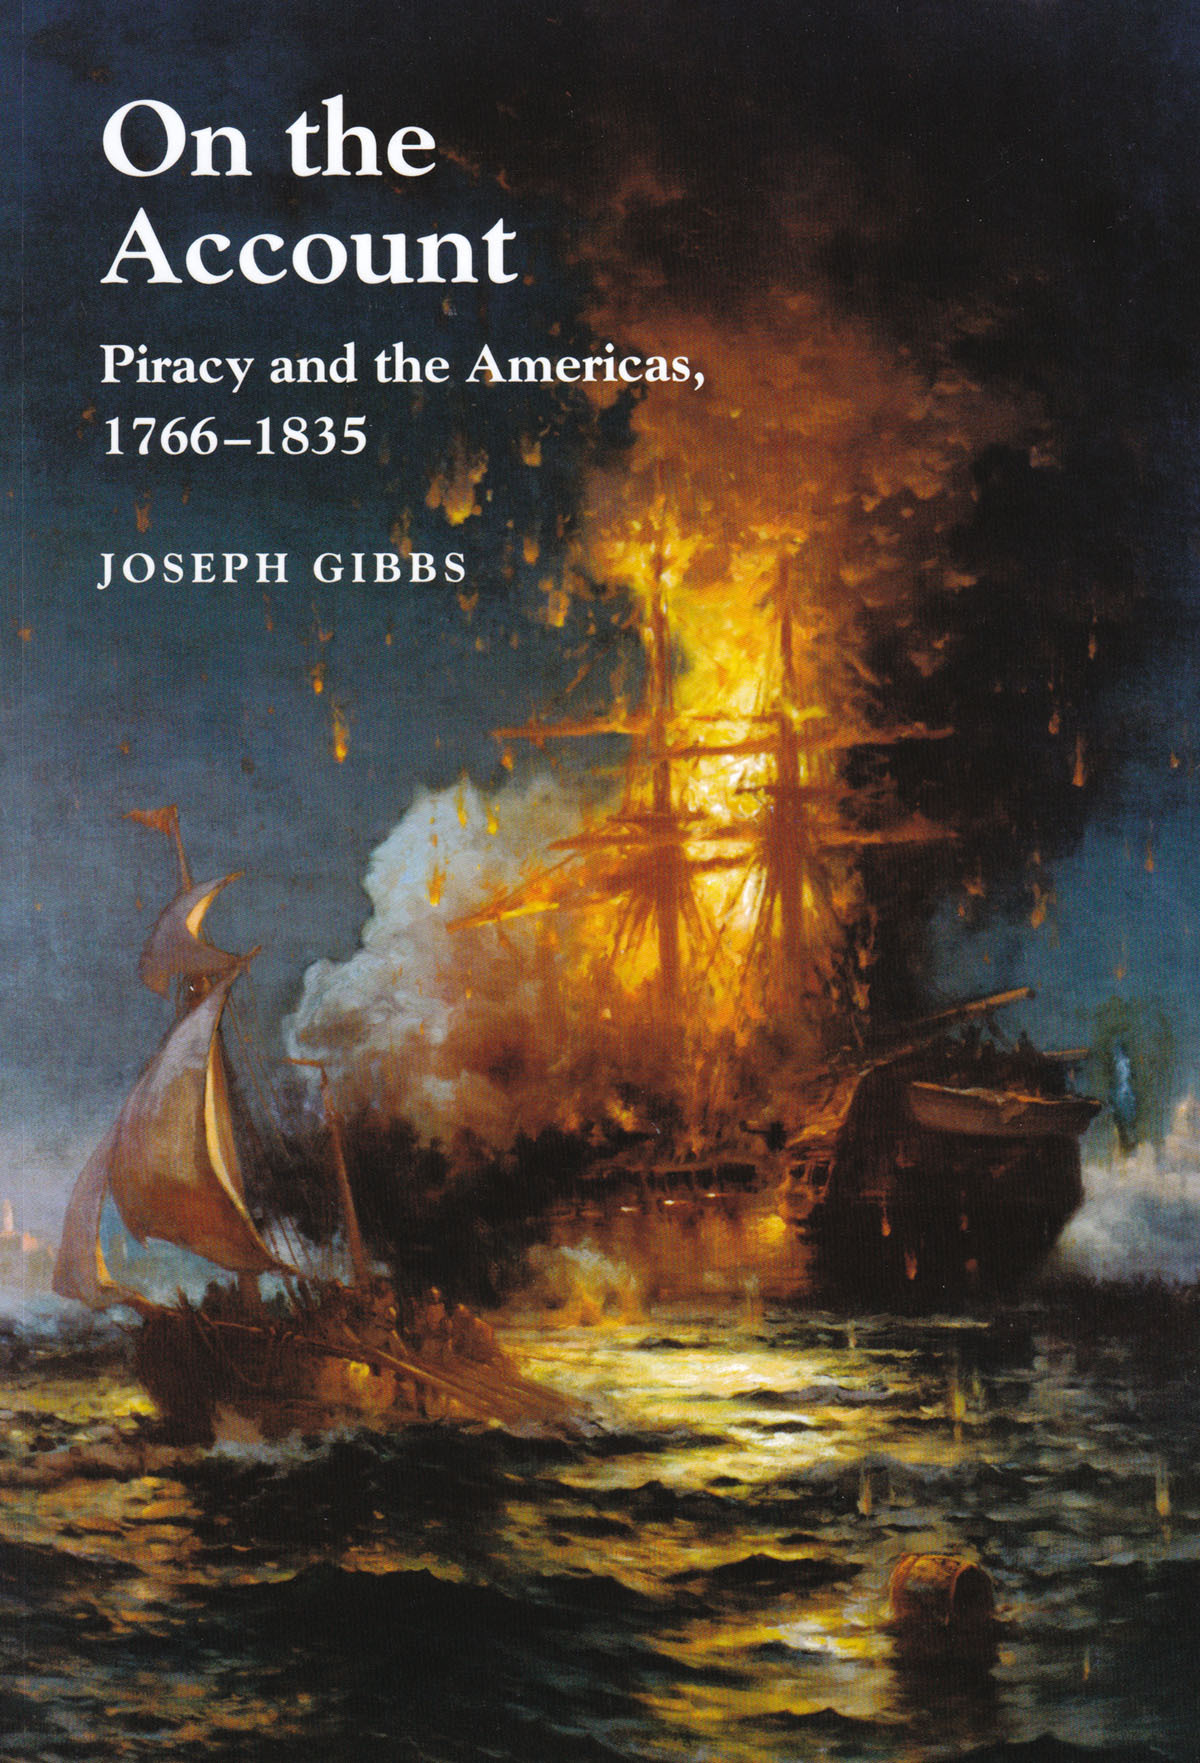 "BOOK REVIEW – On the Account: Piracy and the Americas, 1766 – 1835 By Joseph Gibbs, Sussex Academic Press Portland, OR (2012). Reviewed by J.J. Ahern As Joseph Gibbs notes in his introduction to On the Account: Piracy and the Americas, 1766 – 1835, ""Piracy in the Age of Sail continues to fascinate modern audiences (ix)."" The image of swashbuckling buccaneers readily captivates the imagination of all ages; whether that be in the form of Jim Hawkins and Long John Silver in Robert Louis Stevenson's Treasure Island, or one of Walt Disney's many current franchises that flies the black flag (from Jake and the Never Land Pirates to Jack Sparrow and the Pirates of the Caribbean). Though in all of these forms piracy invokes the image of the Golden Age during the early eighteenth century when names like Blackbeard, ""Black Sam"" Bellamy, and Bartholomew Roberts instilled fear in the maritime community. In On the Account, Gibbs seeks to recount the age of piracy of the late eighteenth and early nineteenth centuries when the young United States was forced to deal with consequences of crime on the high seas from the late Colonial era through to the Early Republic. (read the full review)"